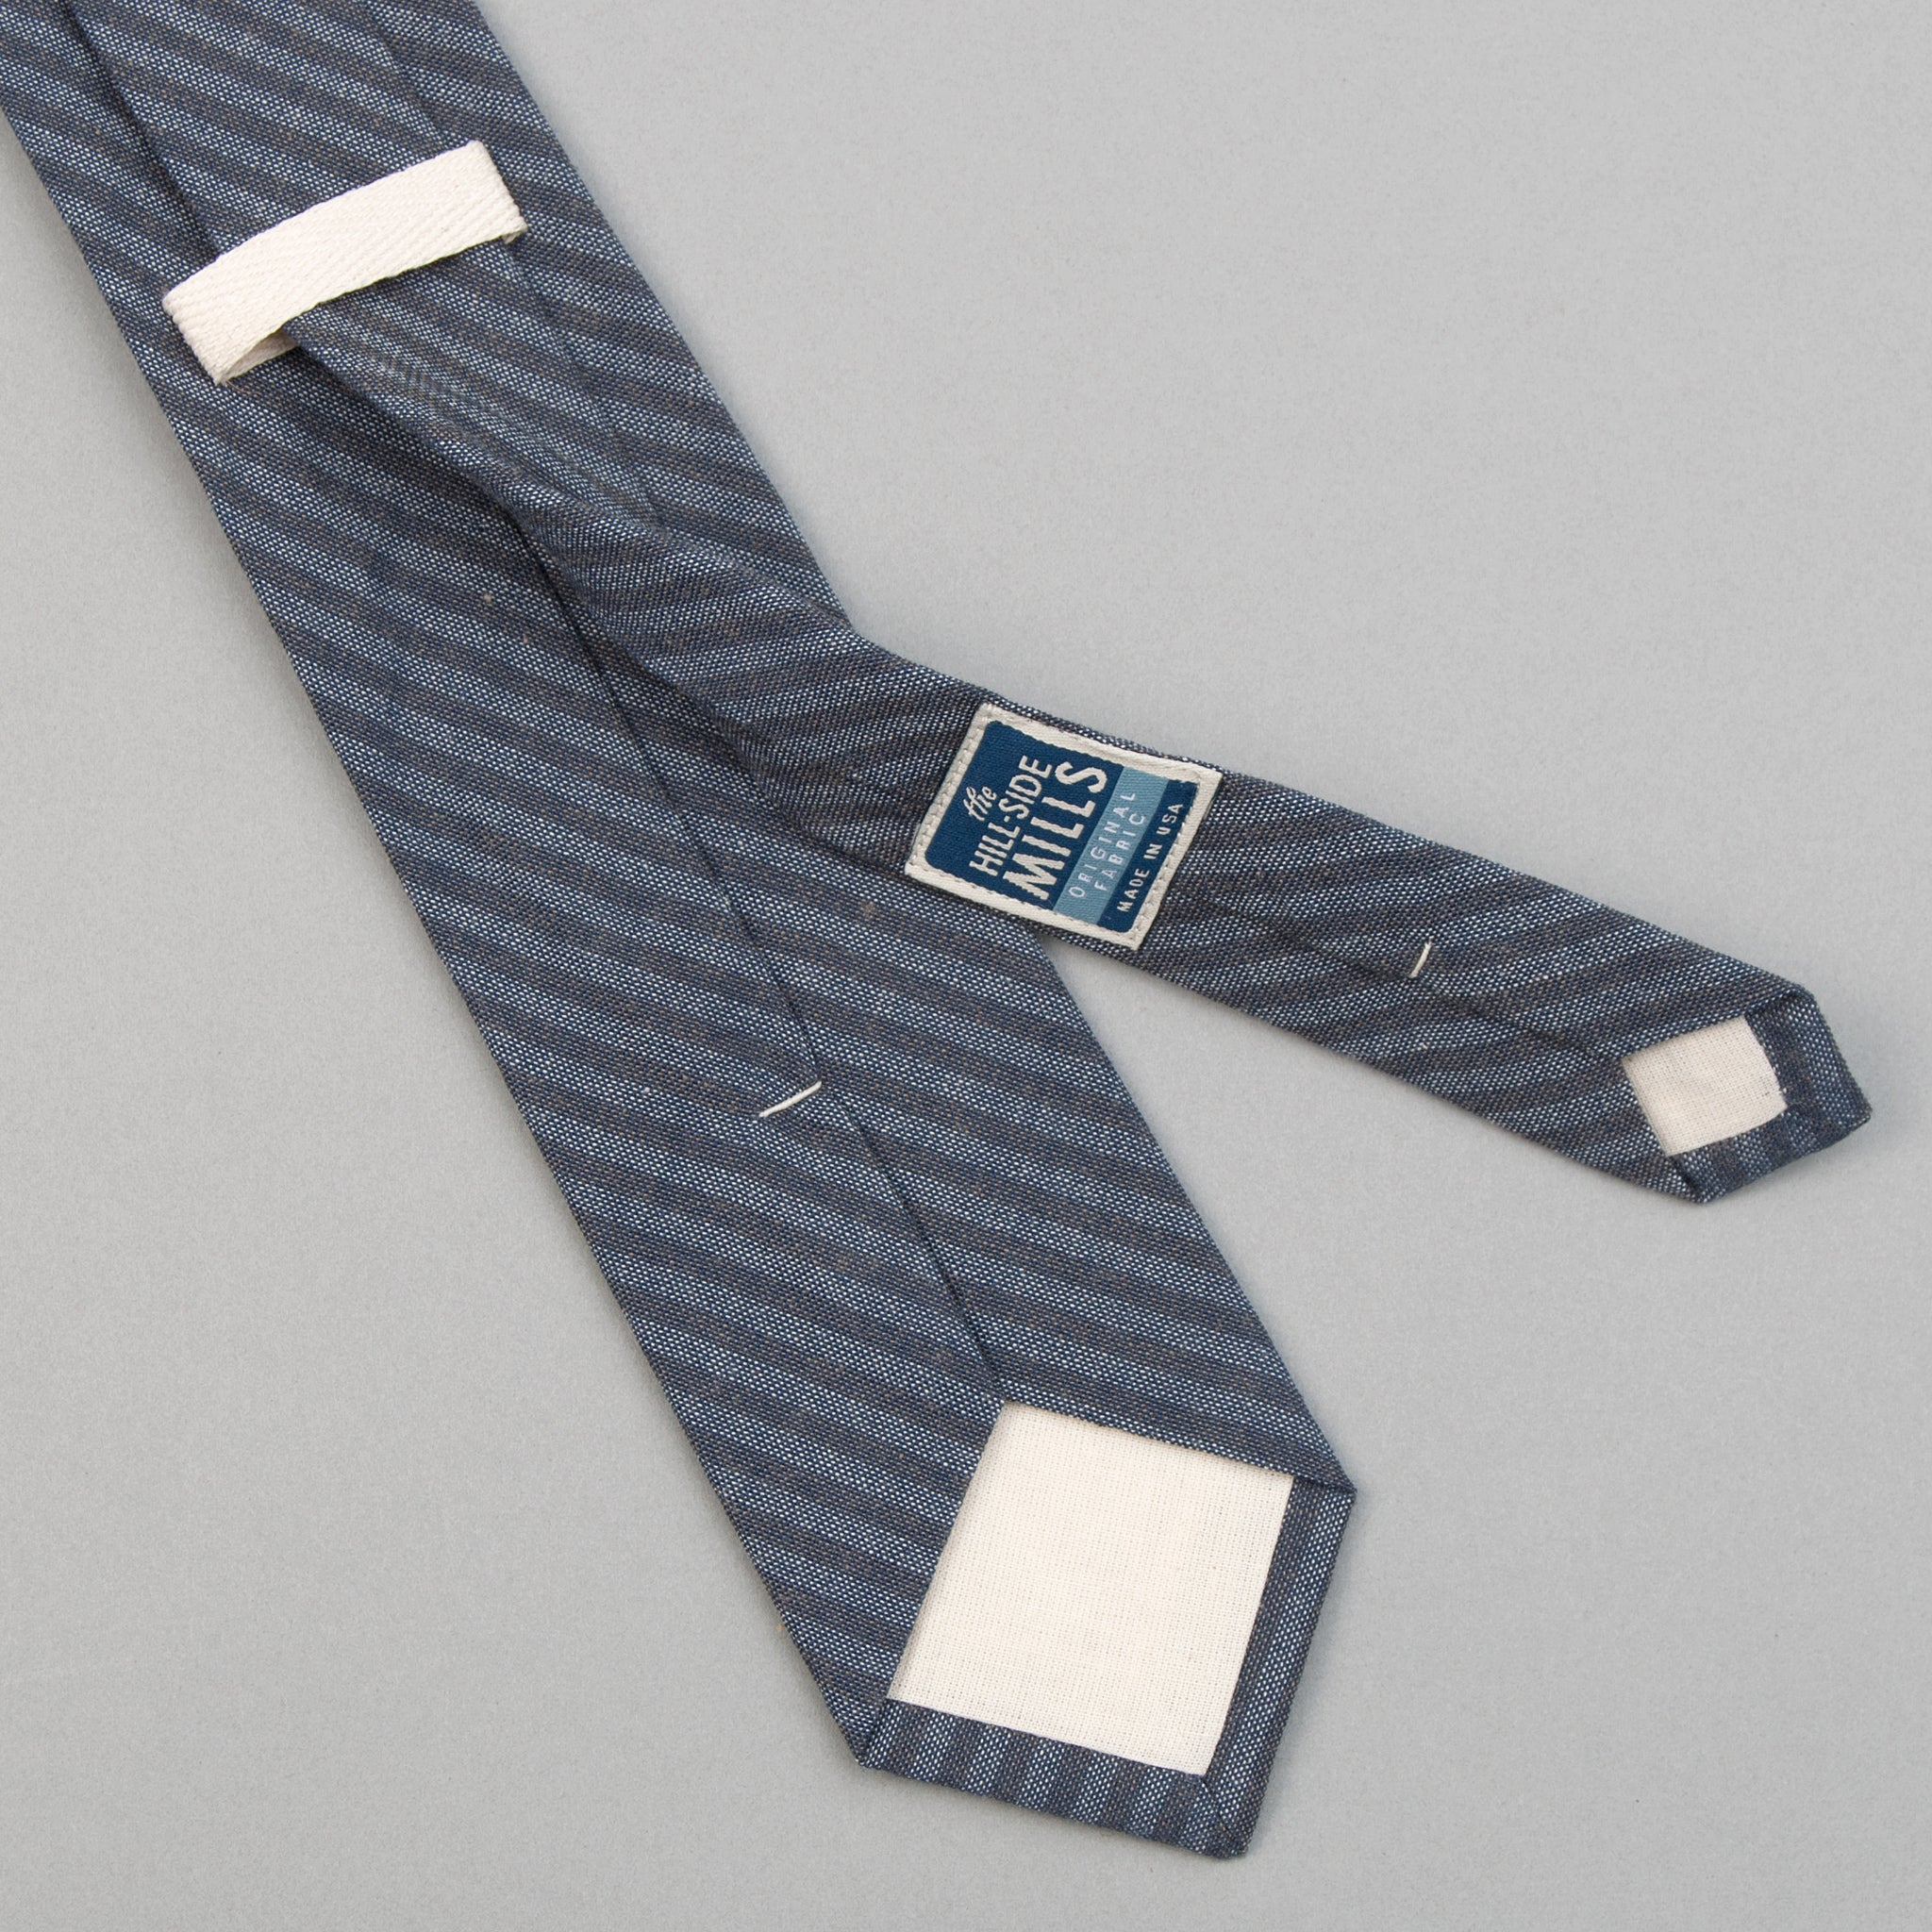 TH-S Mills Navy Warp Tie, Hickory Stripe